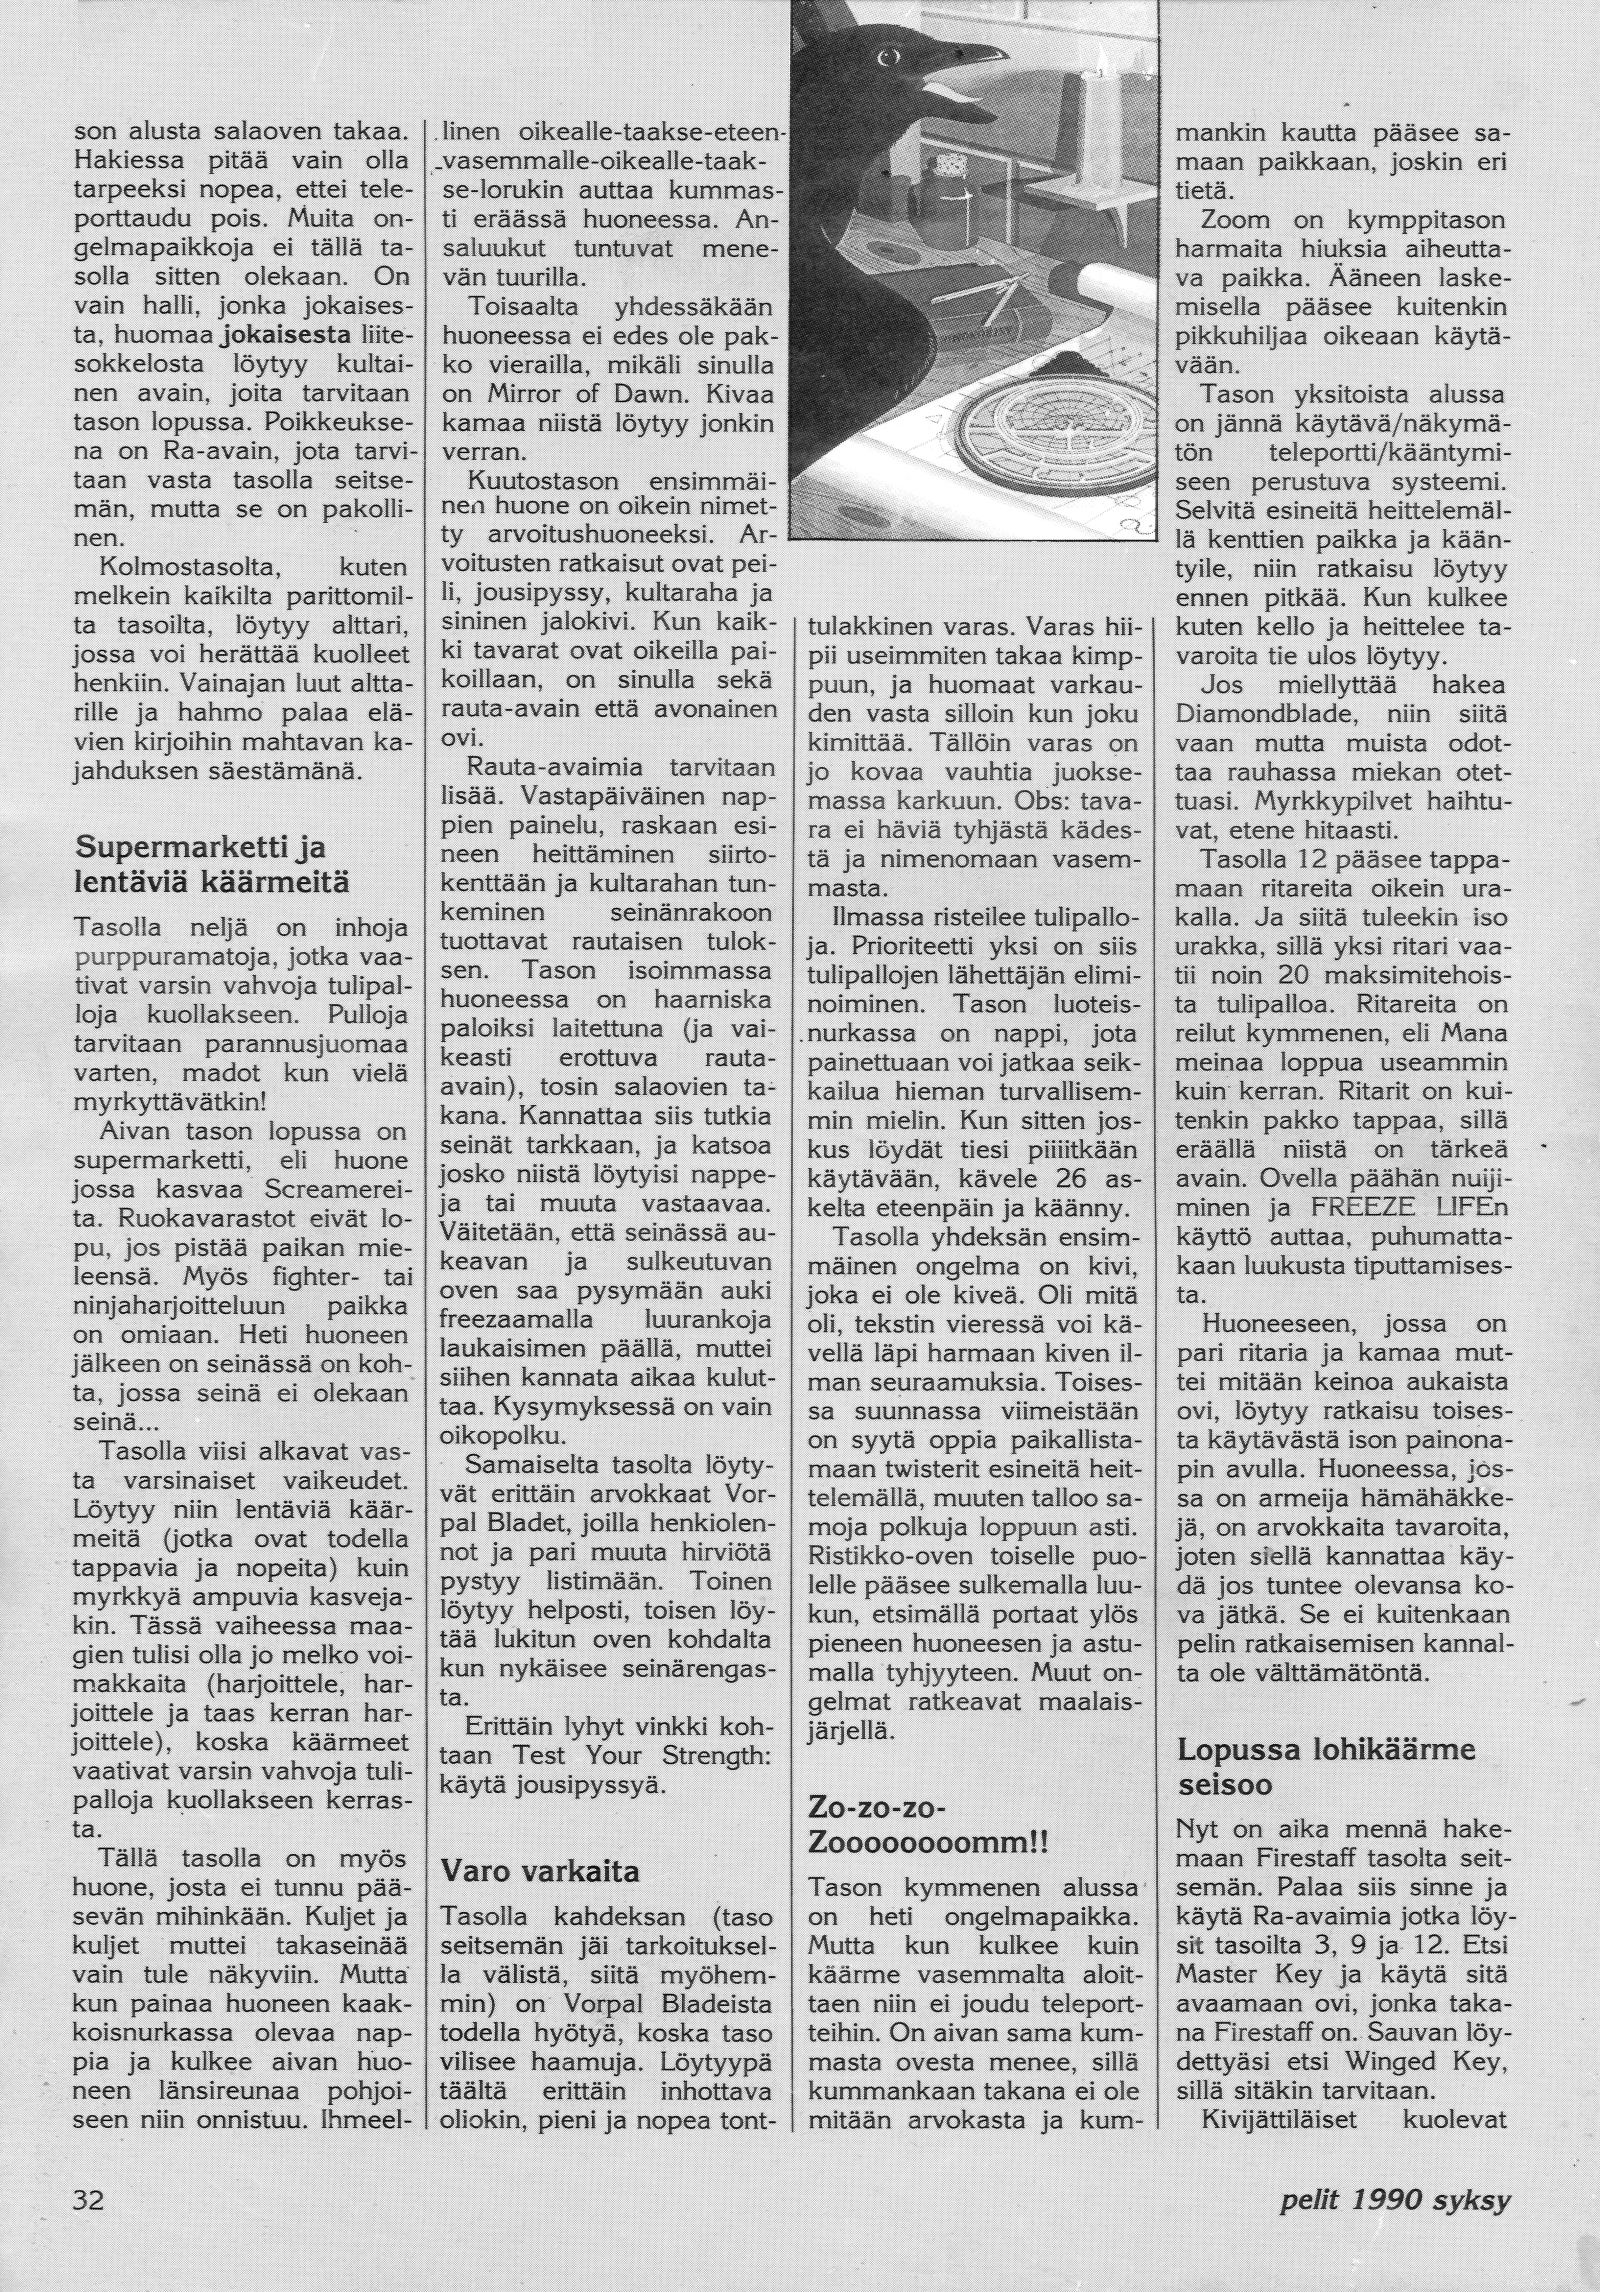 Dungeon Master Hints published in Finnish magazine 'Pelit', Issue #6 Autumn 1990, Page 32